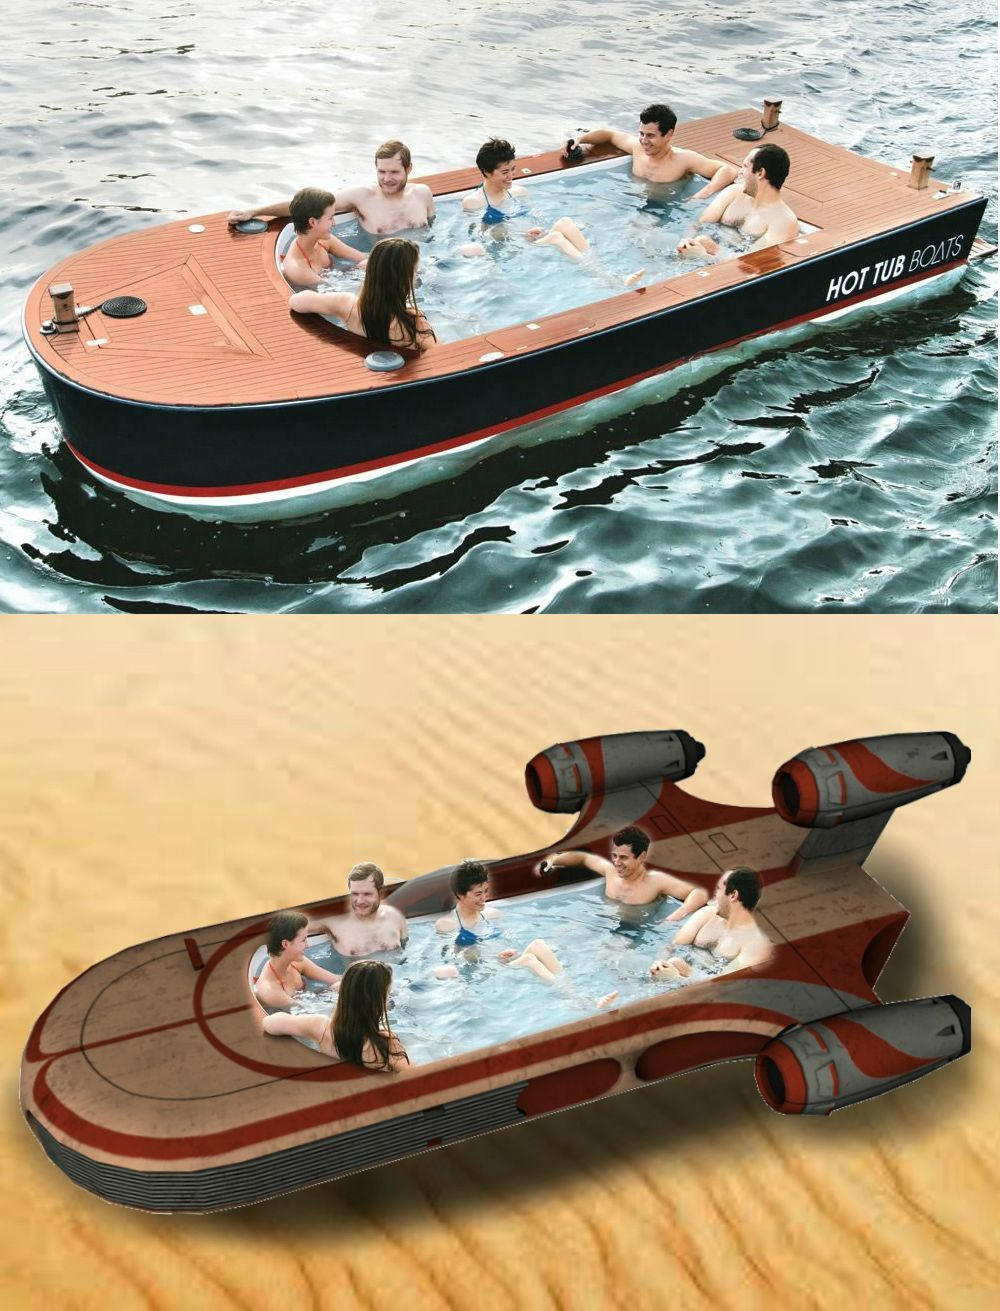 Hot Tub Boat Of Today And Tomorrow Meme Collection Boat Hot Tub Tomorrow